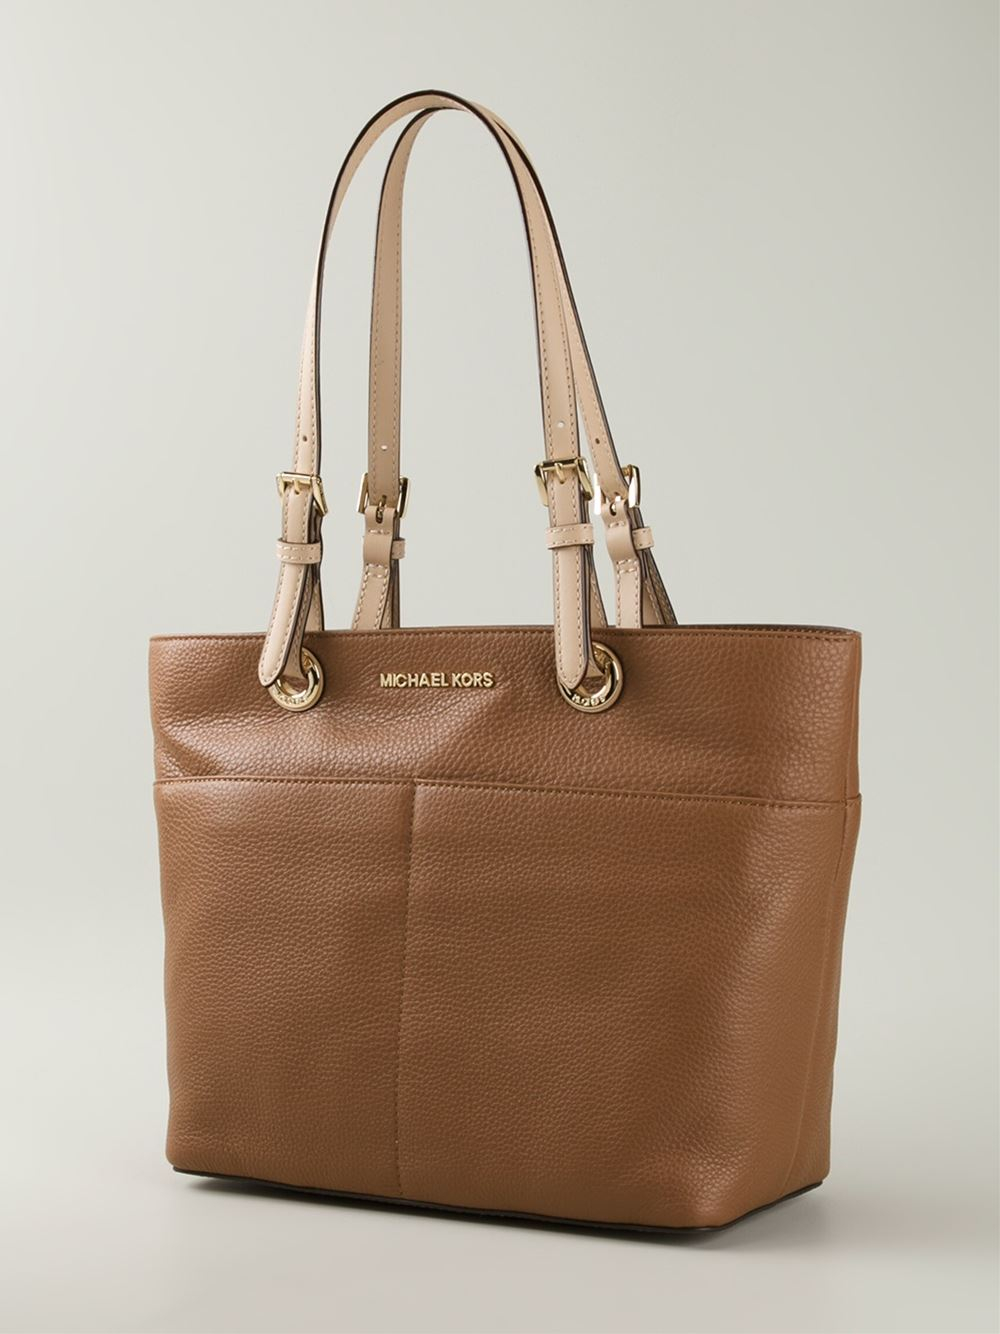 a80af24e614d Michael Kors Brown Handbags Uk | Stanford Center for Opportunity ...